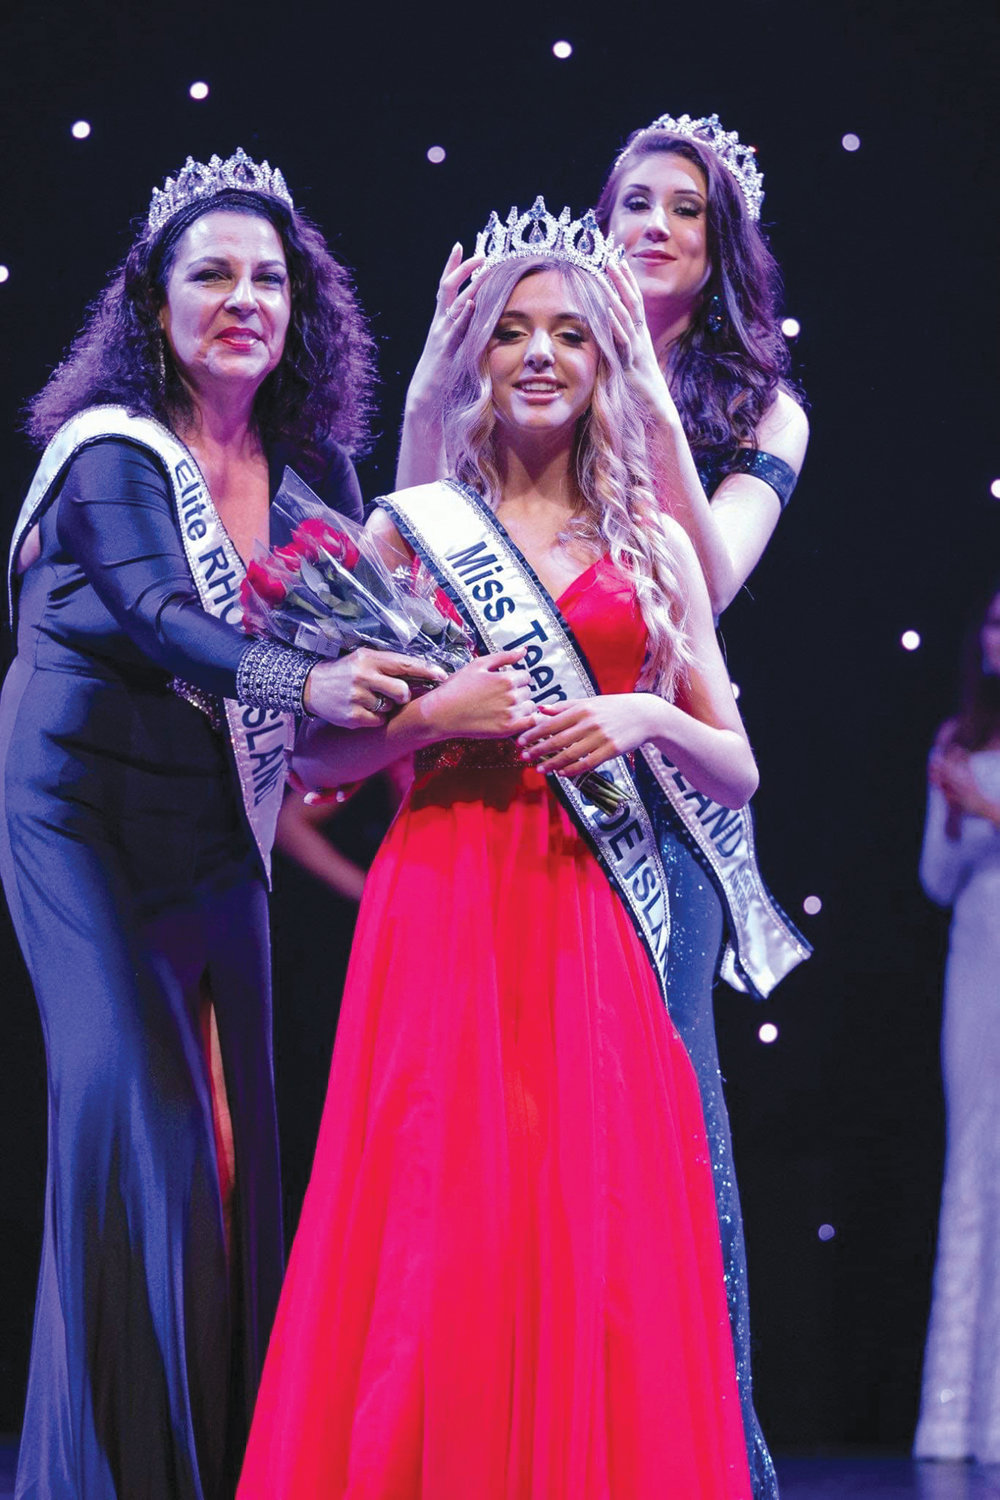 SHINING STAR: Warwick resident Sophia Skaltsis is crowned Miss Teen Rhode Island North America by Anna Casador as Gianna Paul looks on.